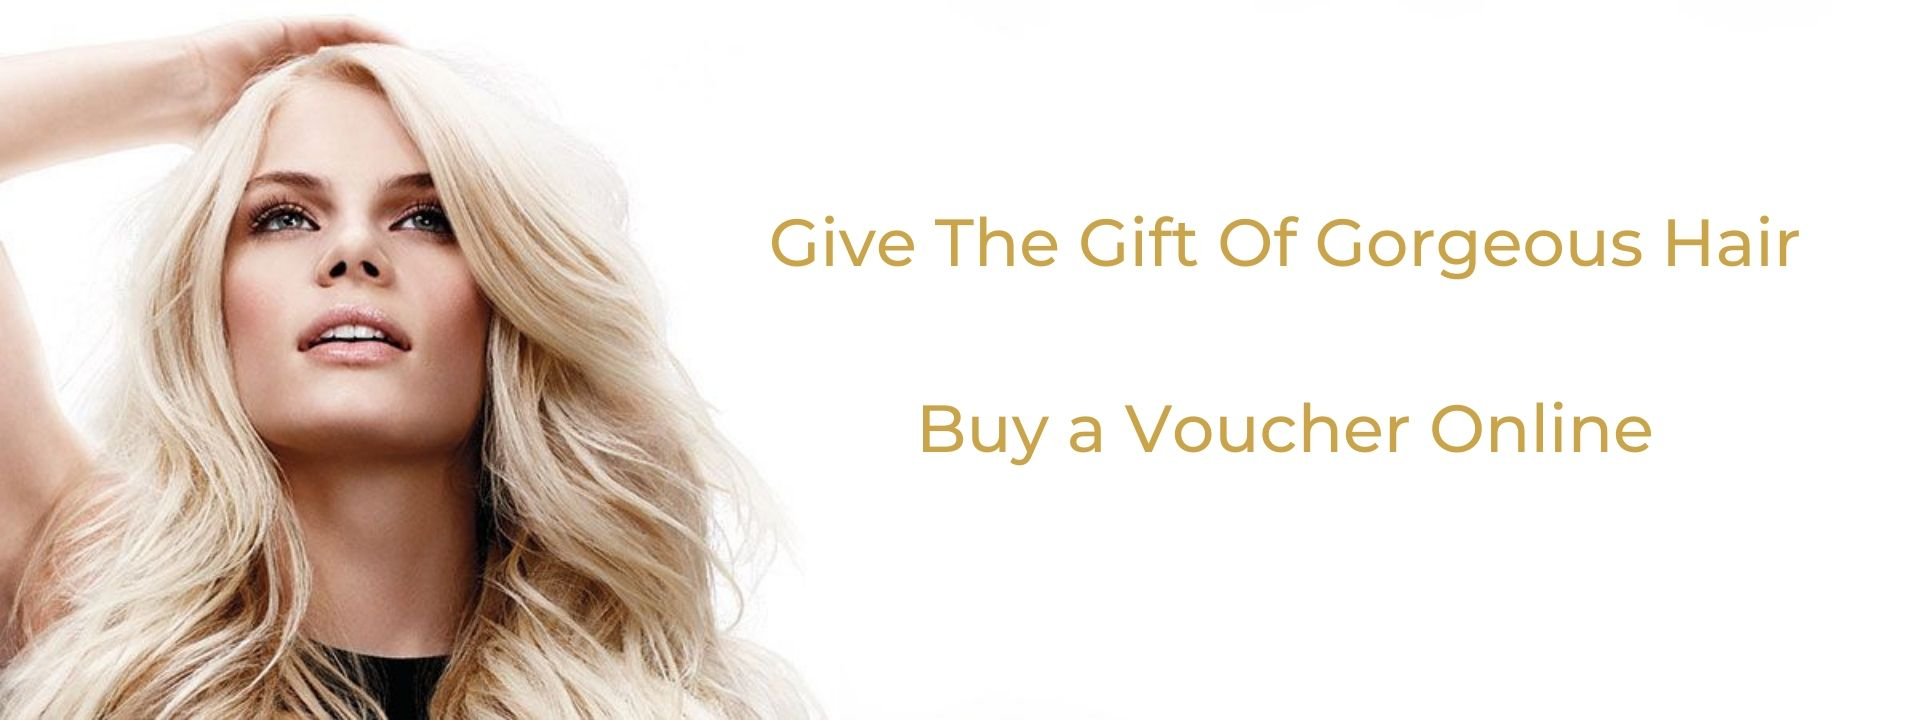 Online Gift Vouchers at Esente Hair Salon in Wimbledon